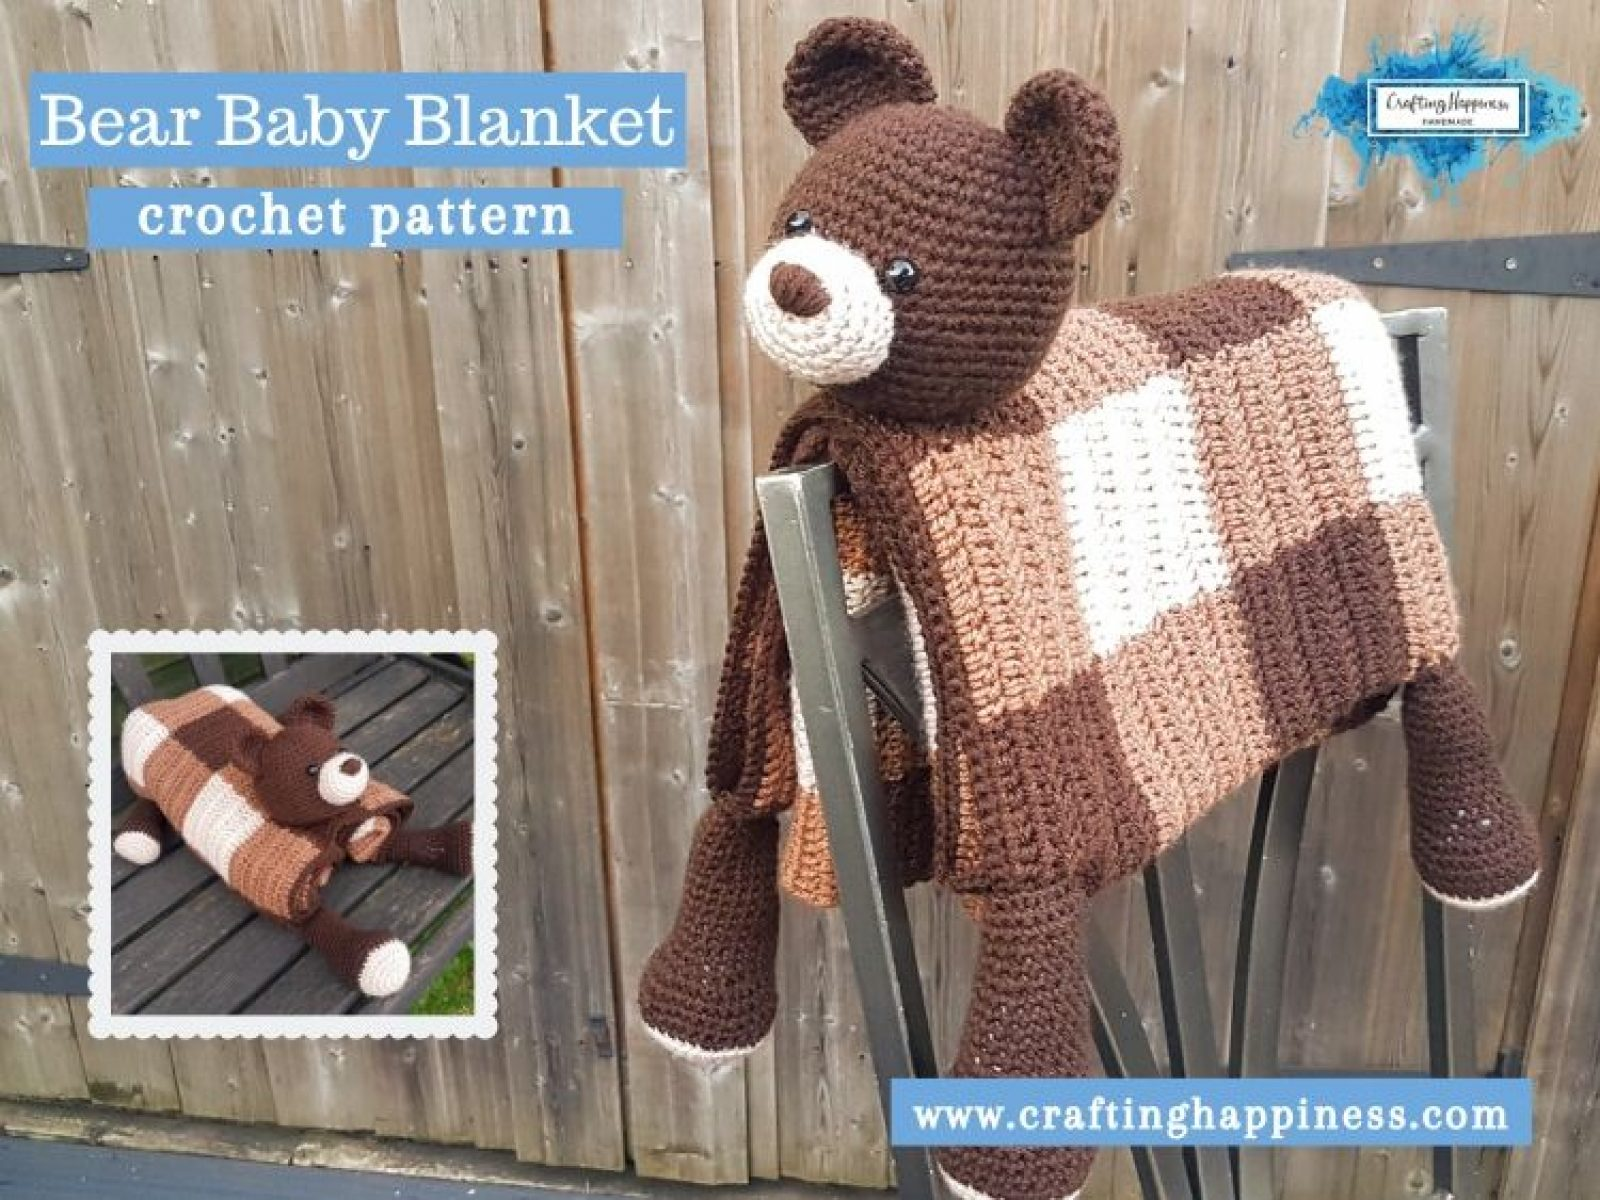 Bear Baby Blanket by Crafting Happiness FACEBOOK POSTER